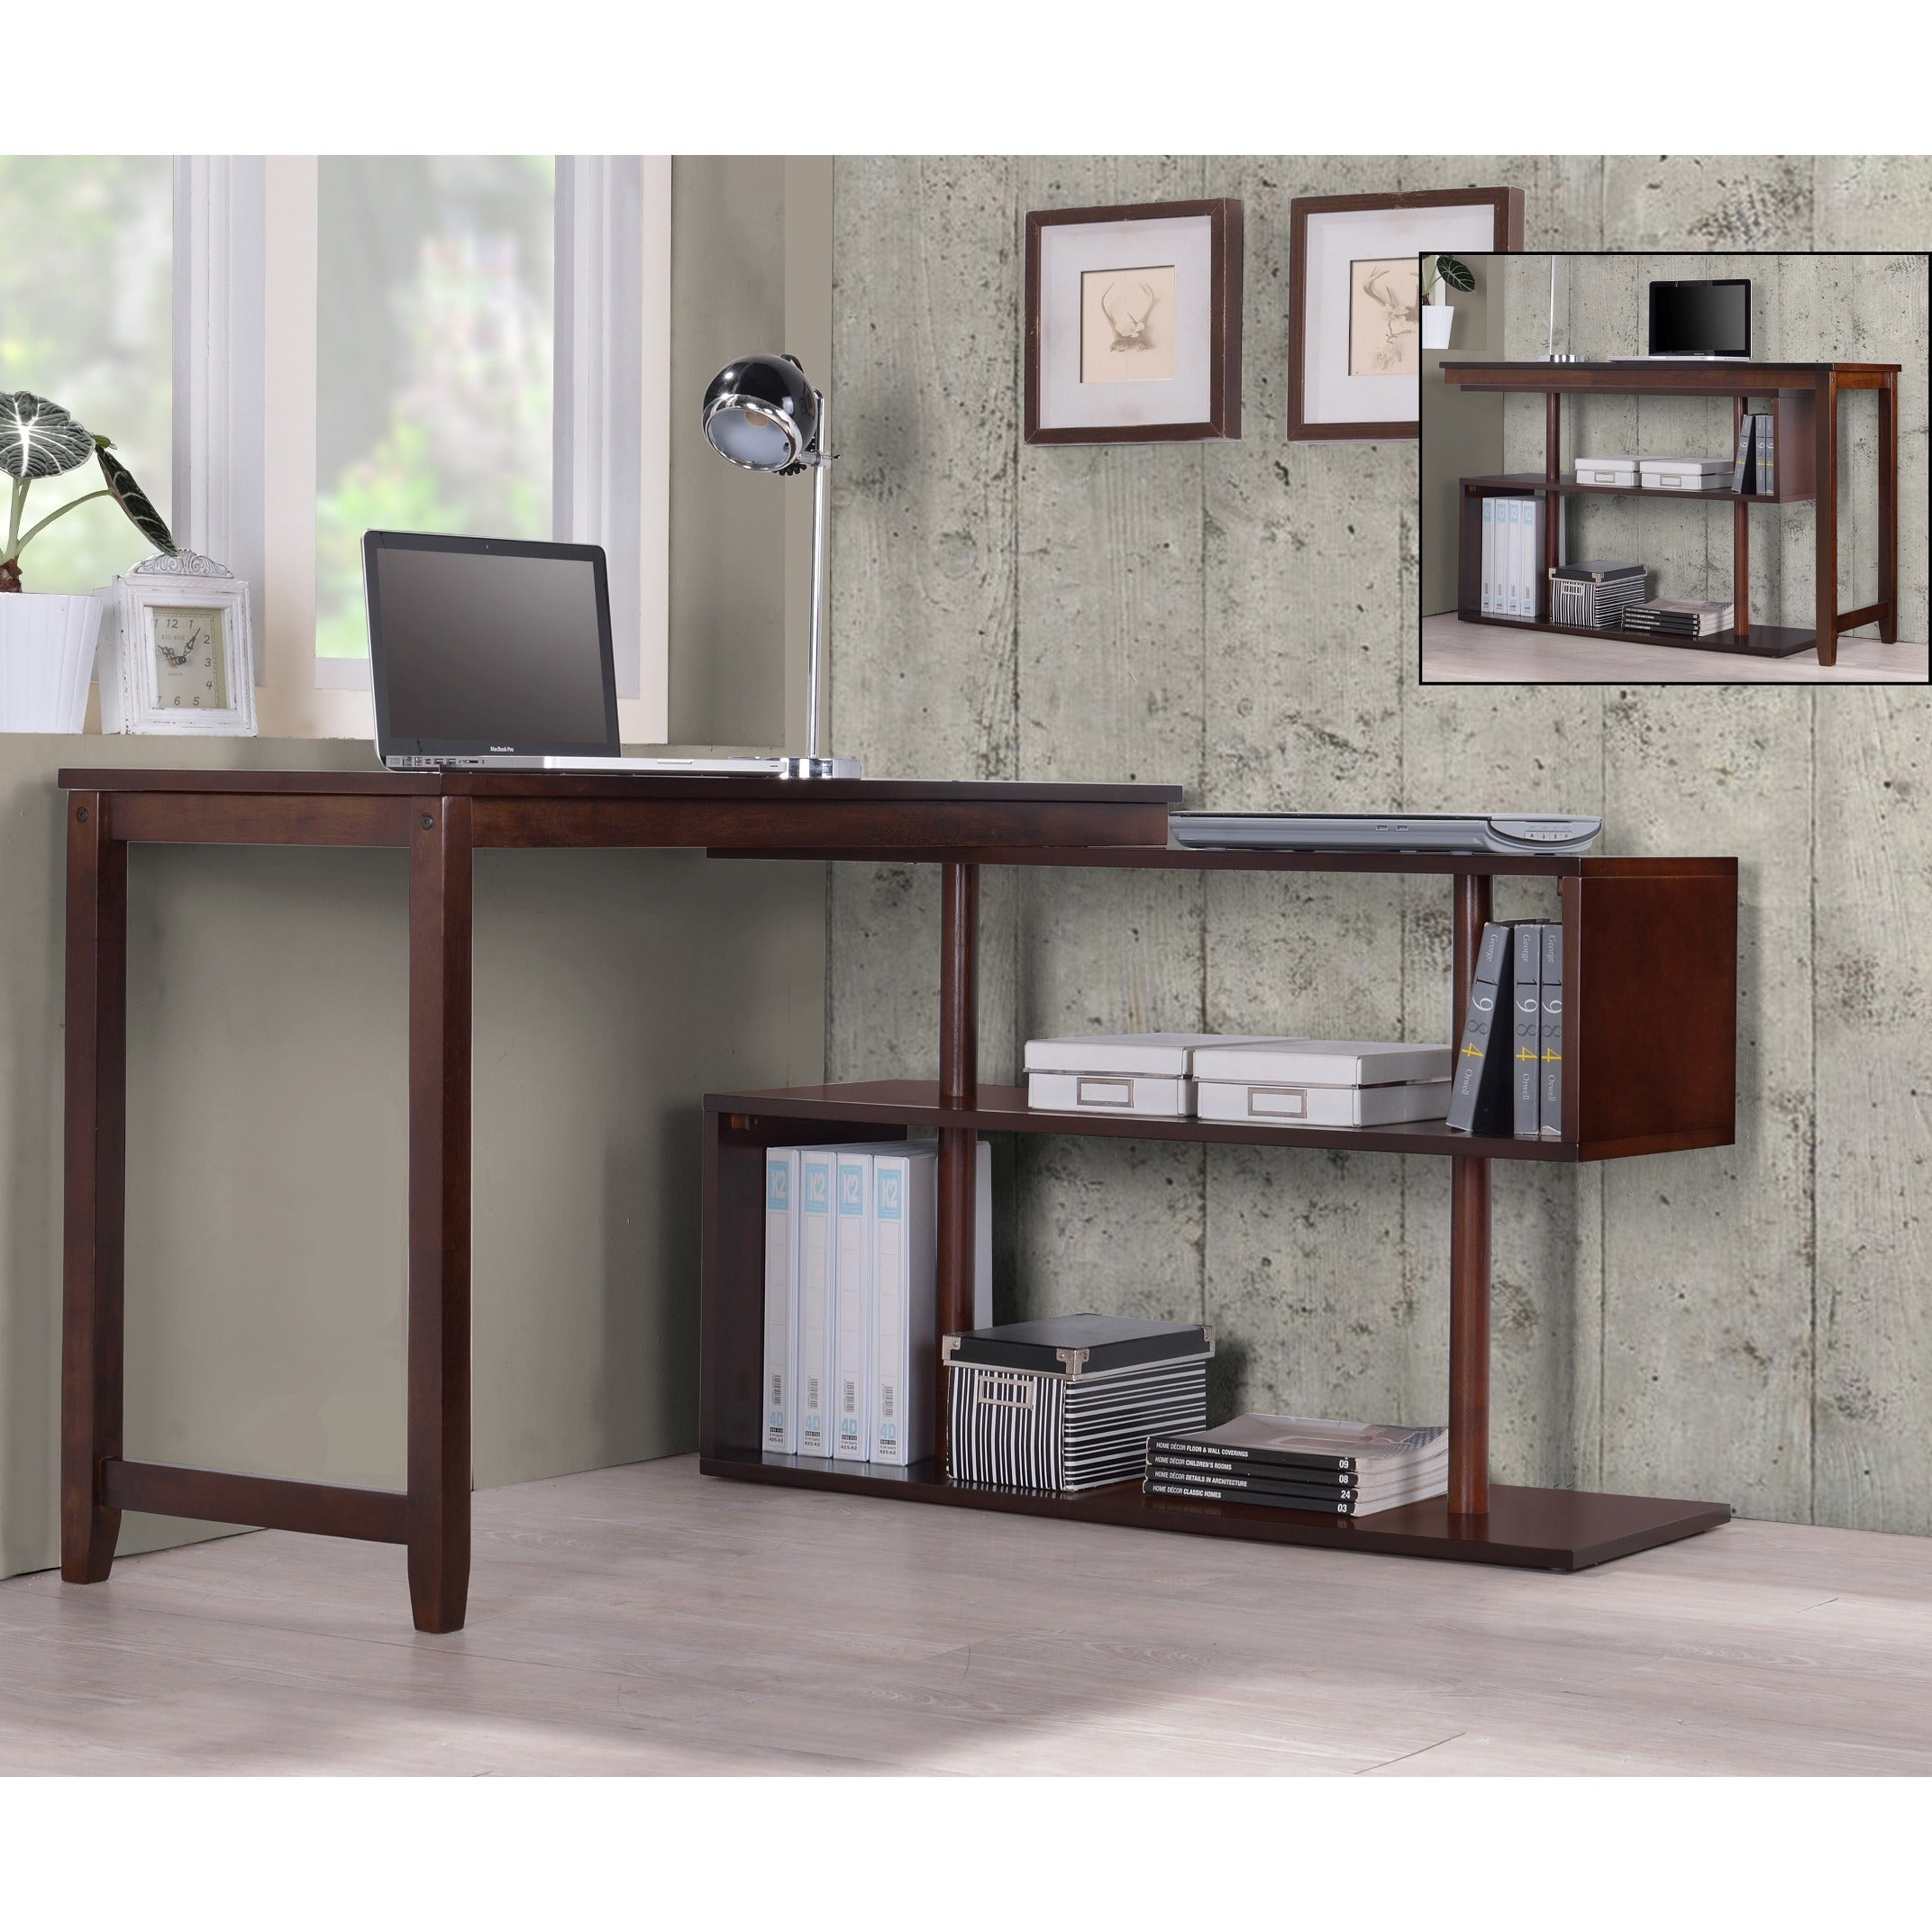 bookshelf wfp corliving styled desk com computer dining rich folio dp espresso amazon kitchen d